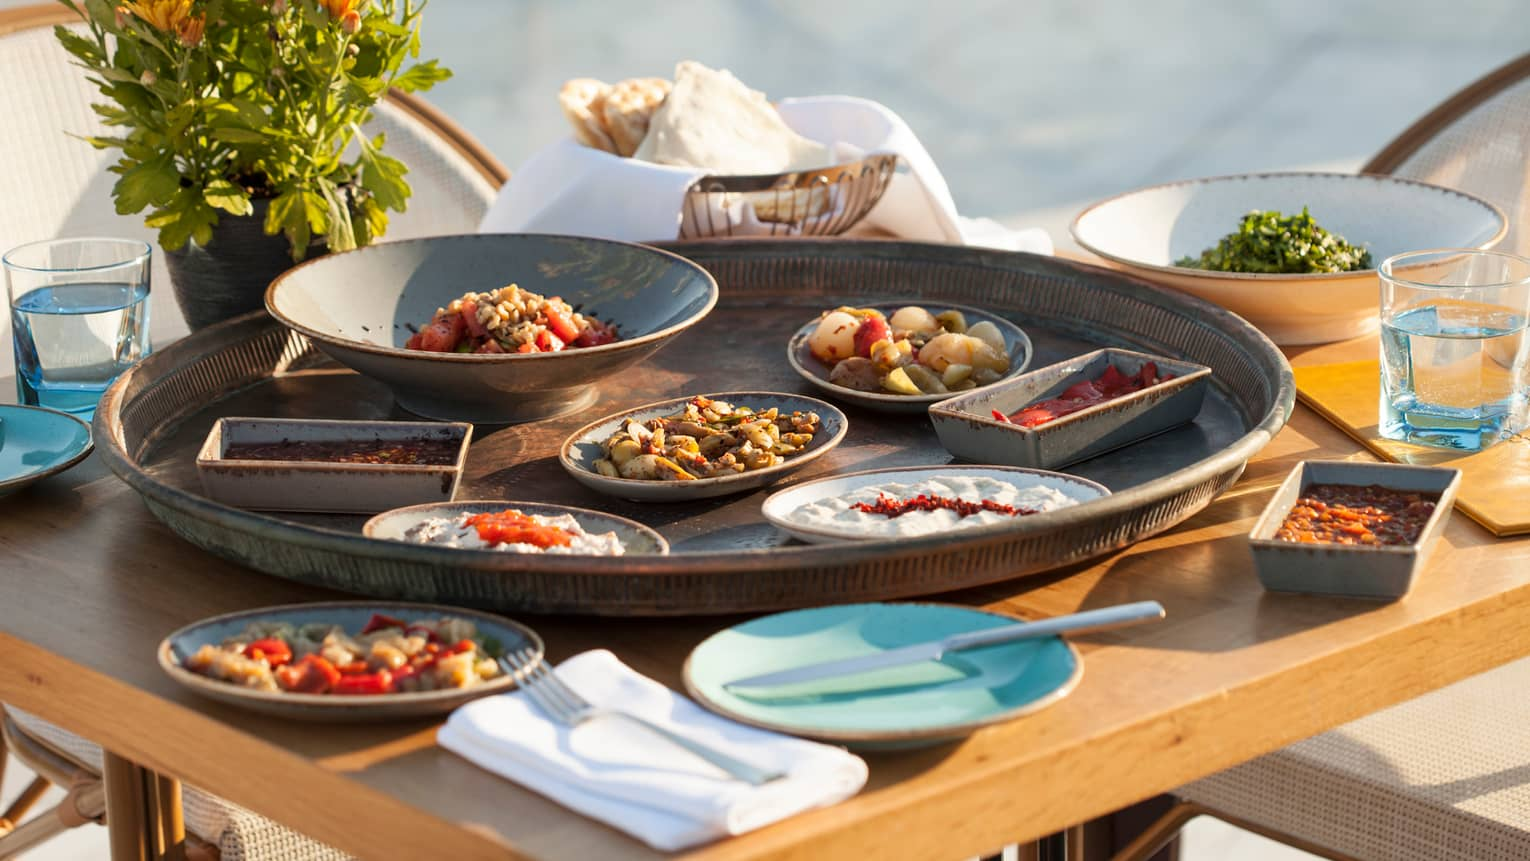 Small dishes of vegetables, salads on large tray on patio table